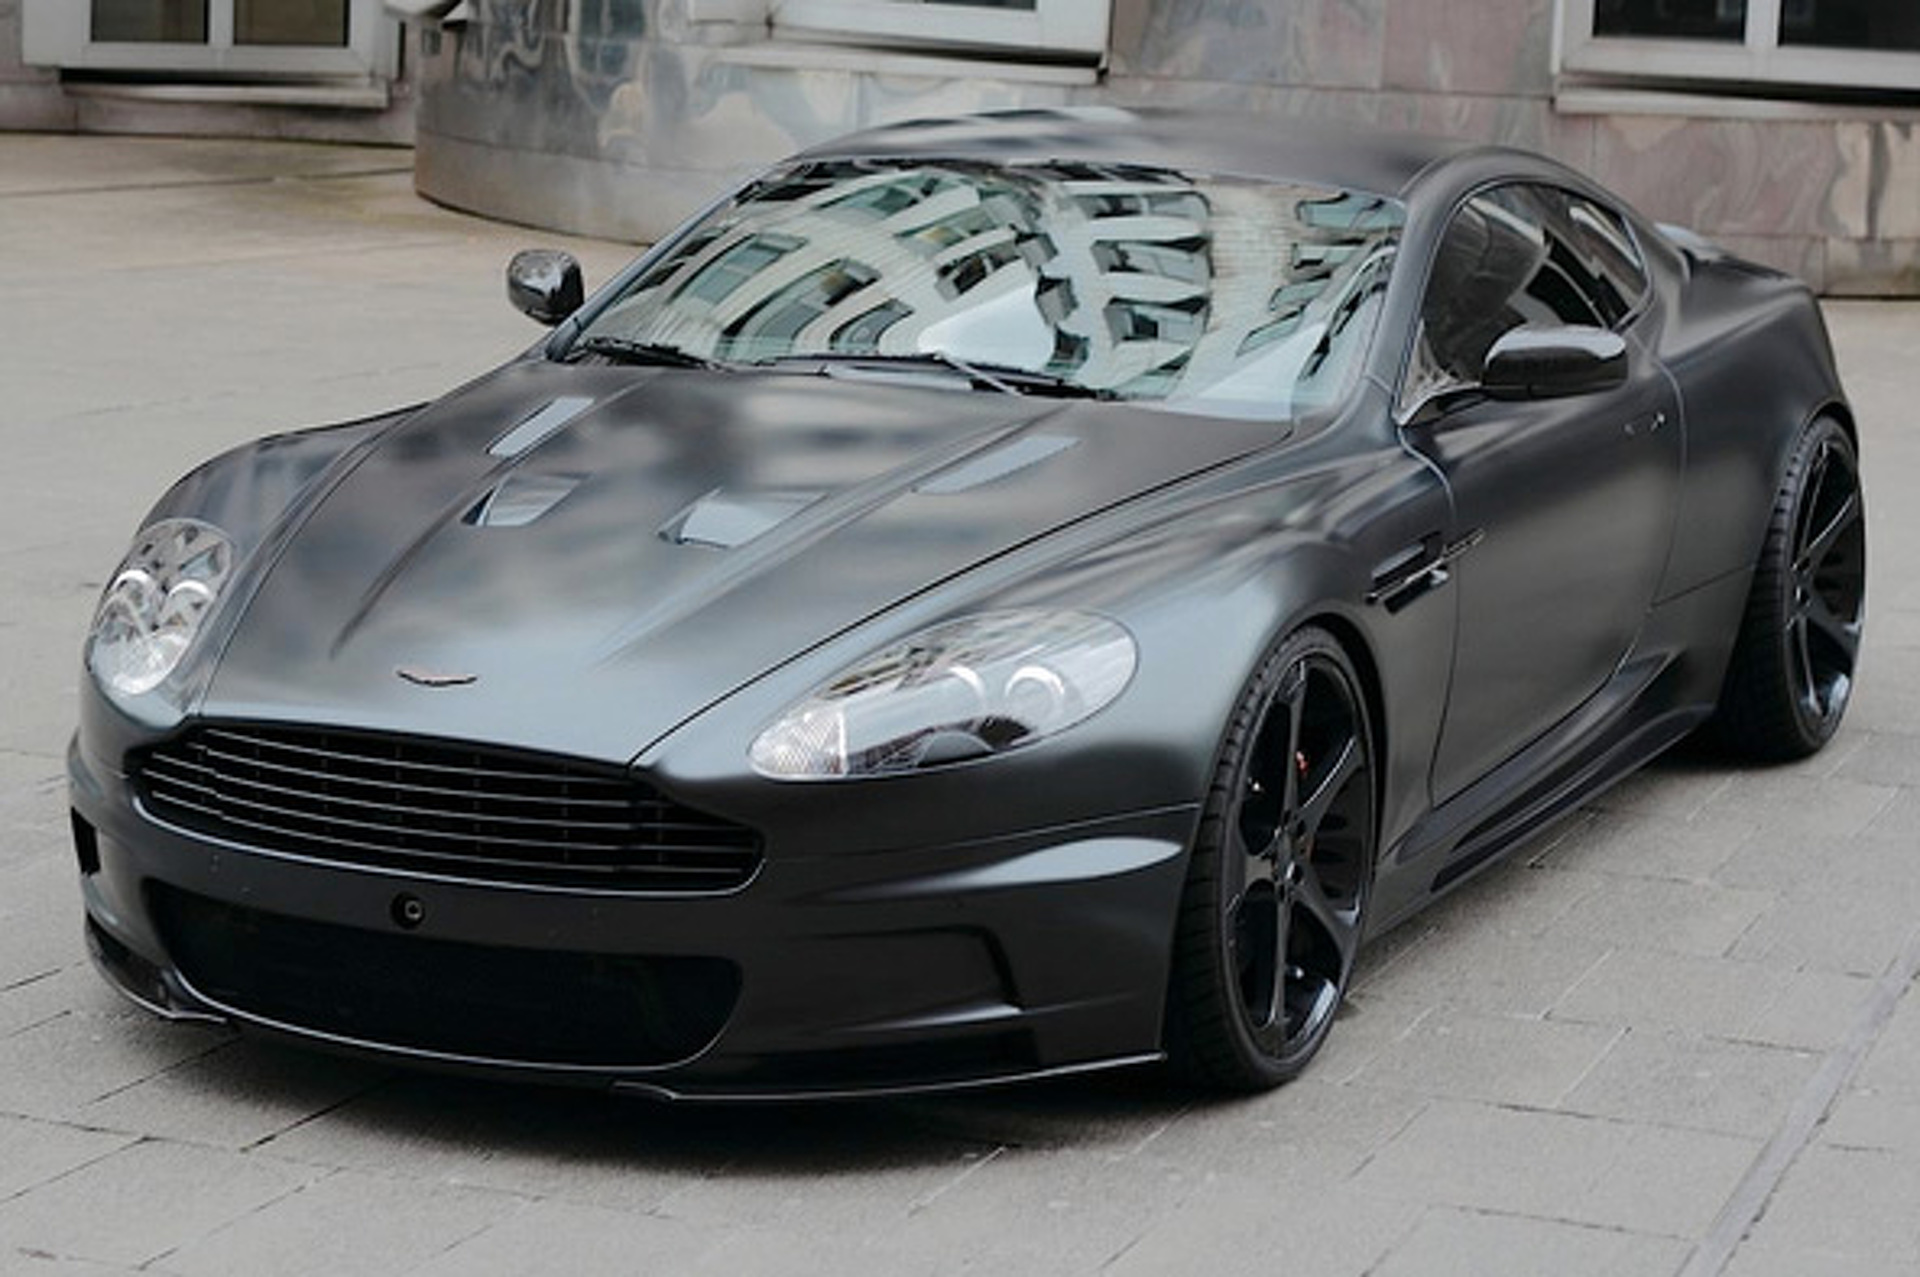 From Germany With Love: Tuned DBS by Anderson